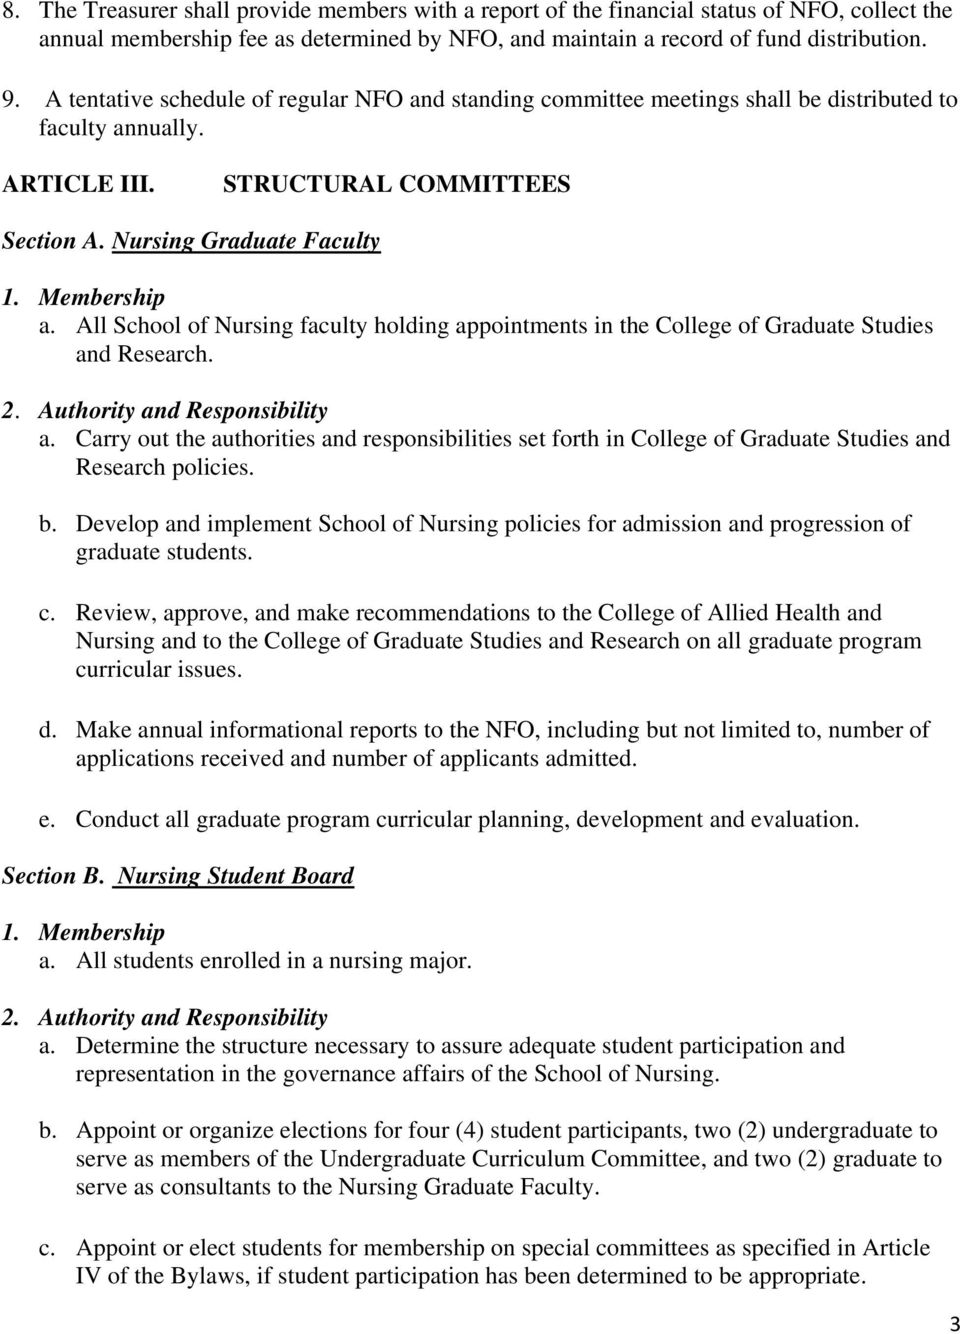 All School of Nursing faculty holding appointments in the College of Graduate Studies and Research. a. Carry out the authorities and responsibilities set forth in College of Graduate Studies and Research policies.